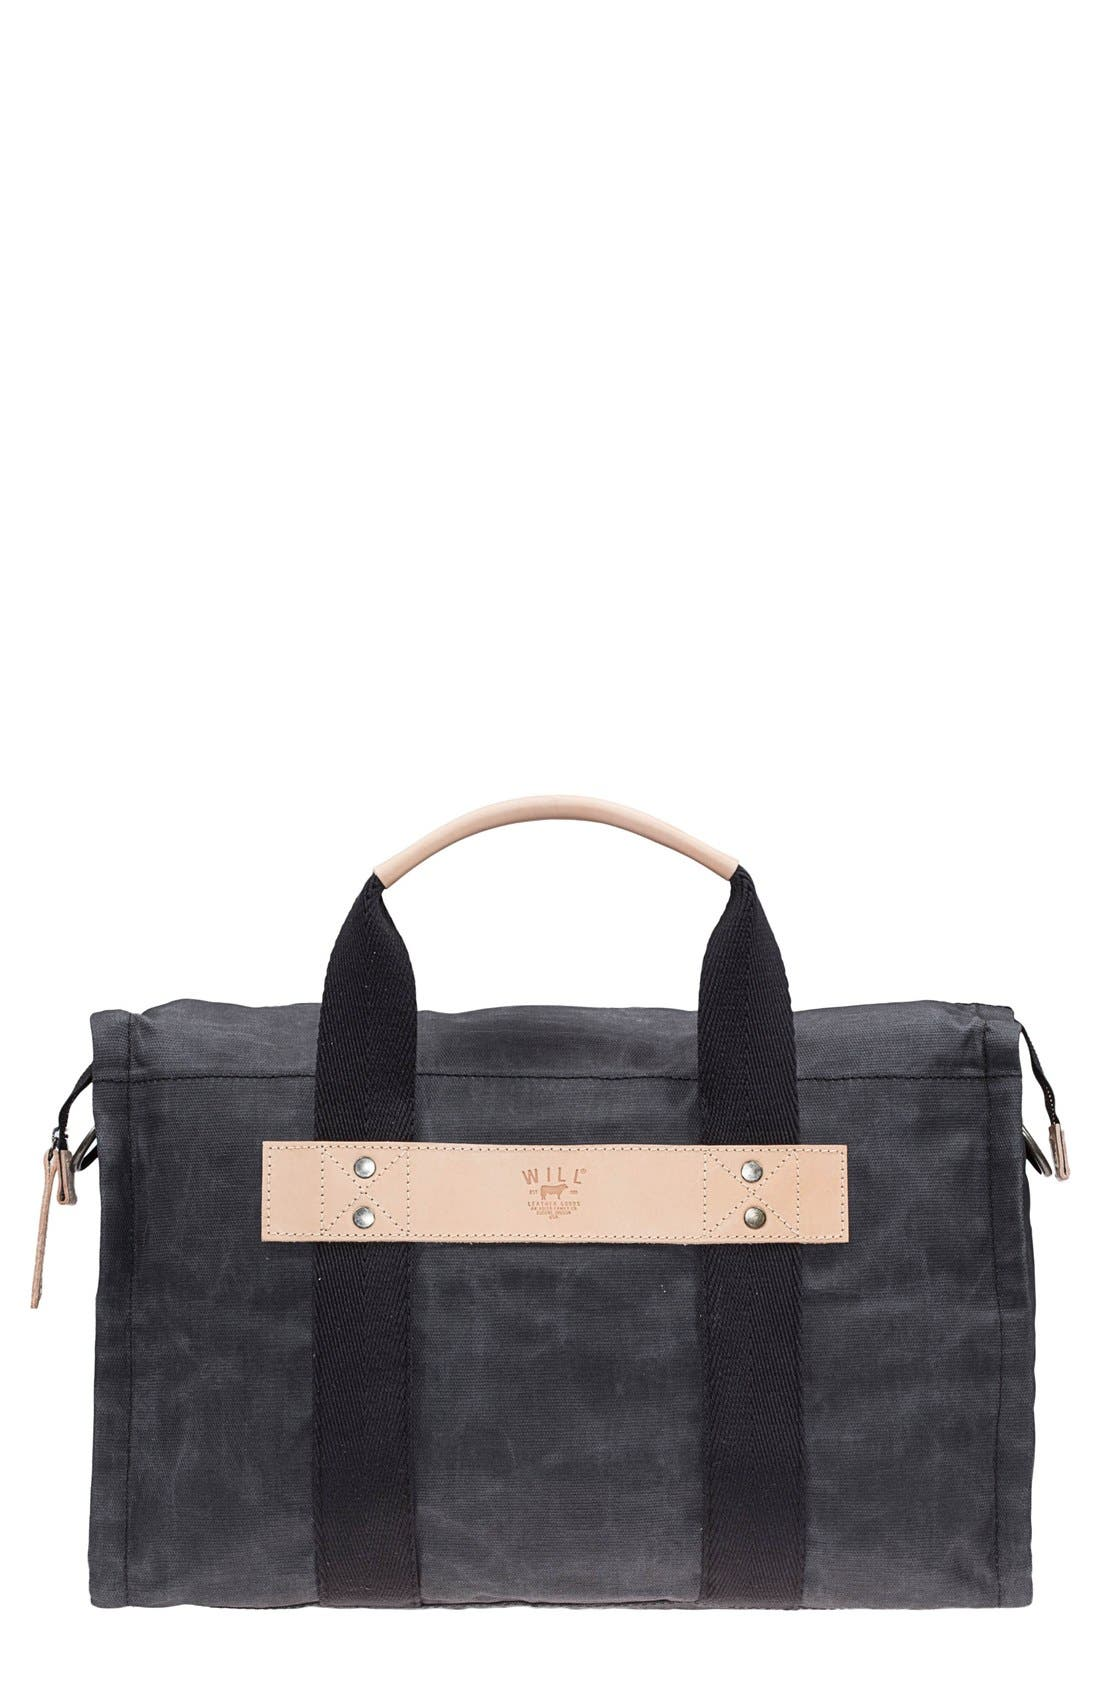 Alternate Image 1 Selected - Will Leather Goods Canvas Duffel Bag